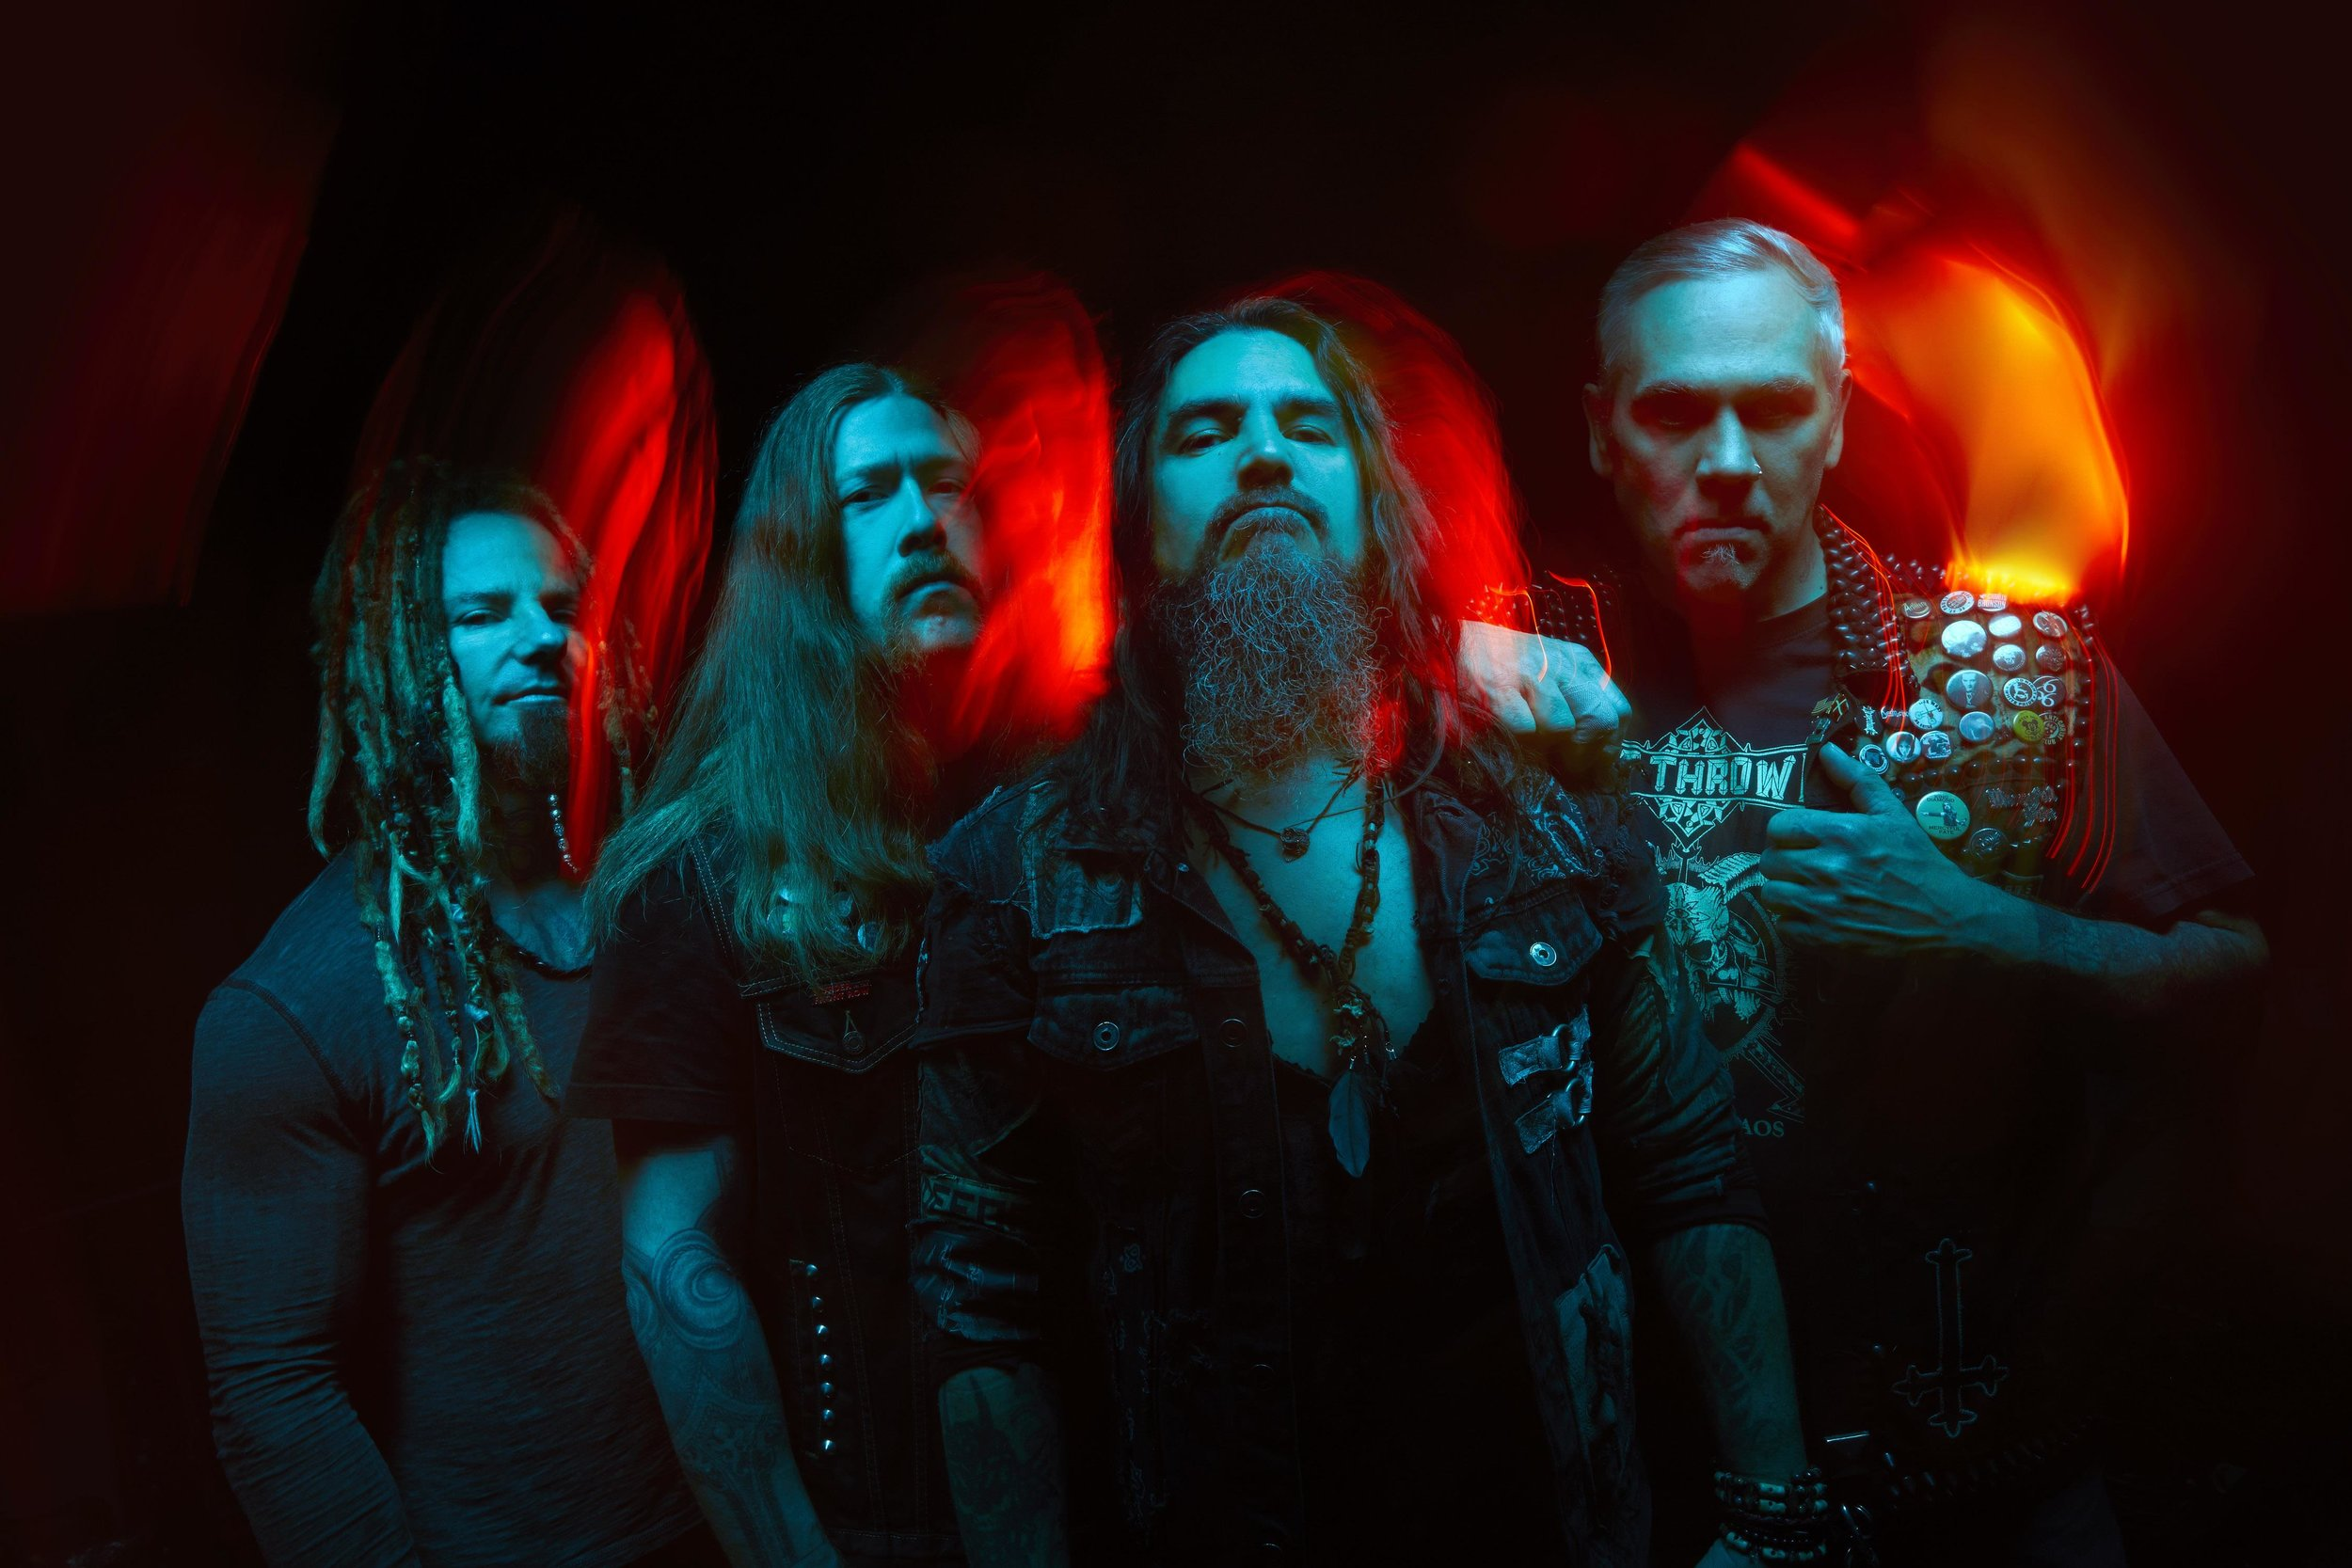 Machine Head Band Photo shoot Promo 2019